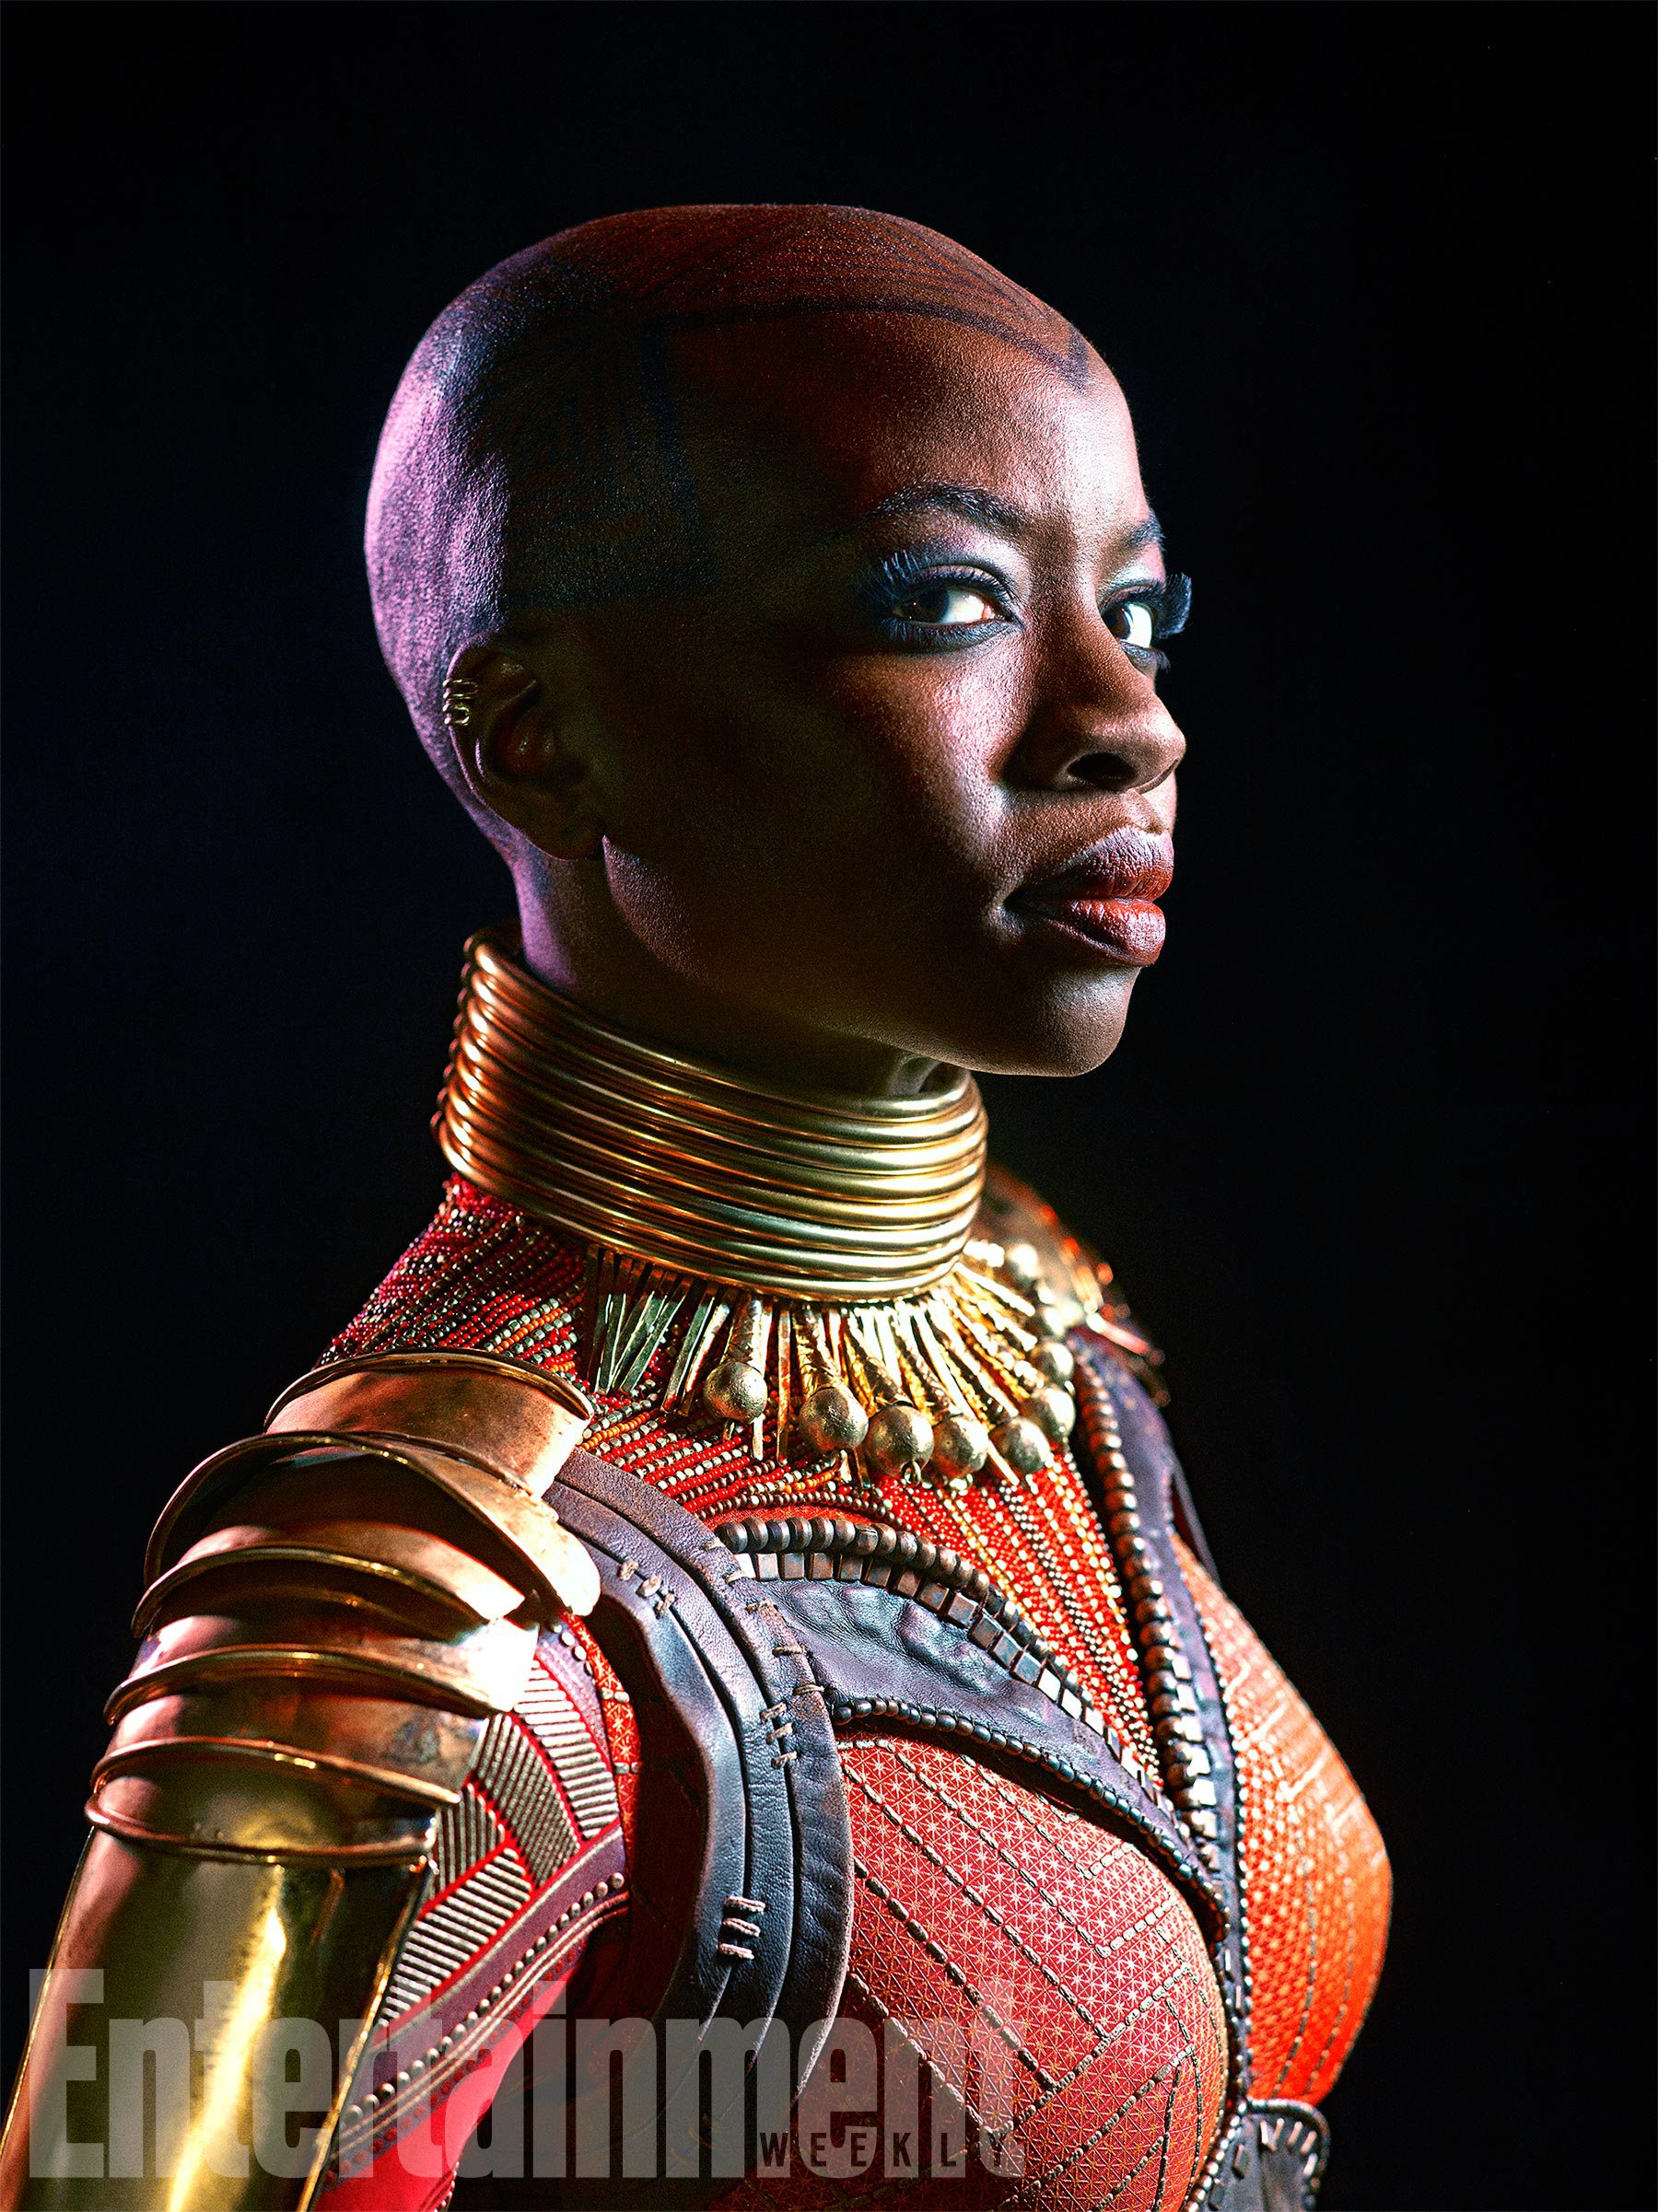 Black Panther Actress Danai Gurira Offers Up New Intel On Her Character Okoye